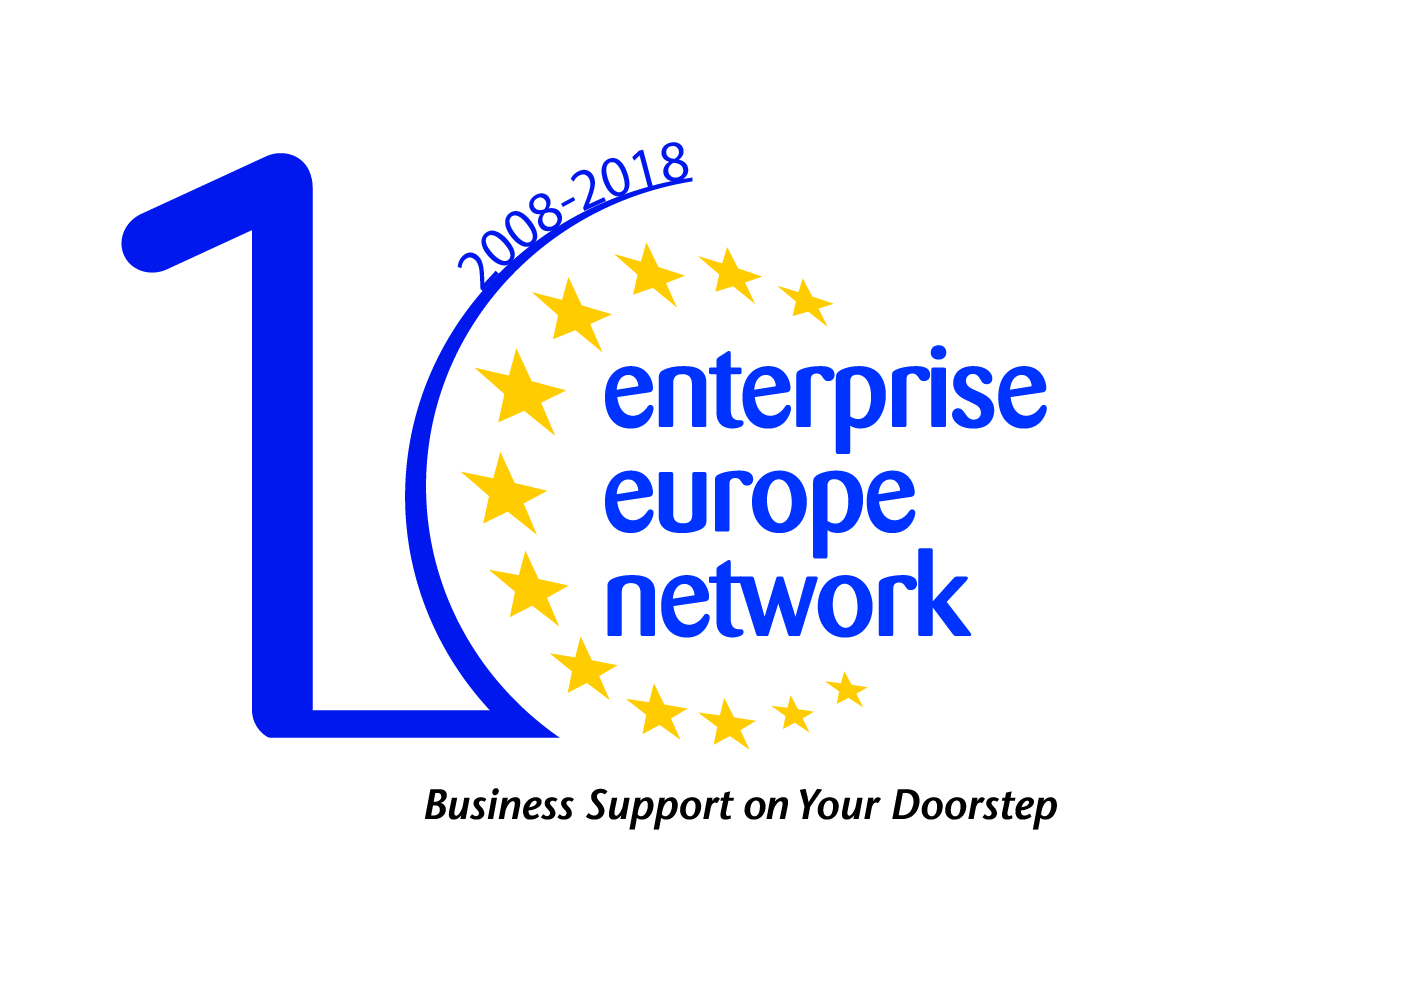 10 jaar Enterprise Europe Network